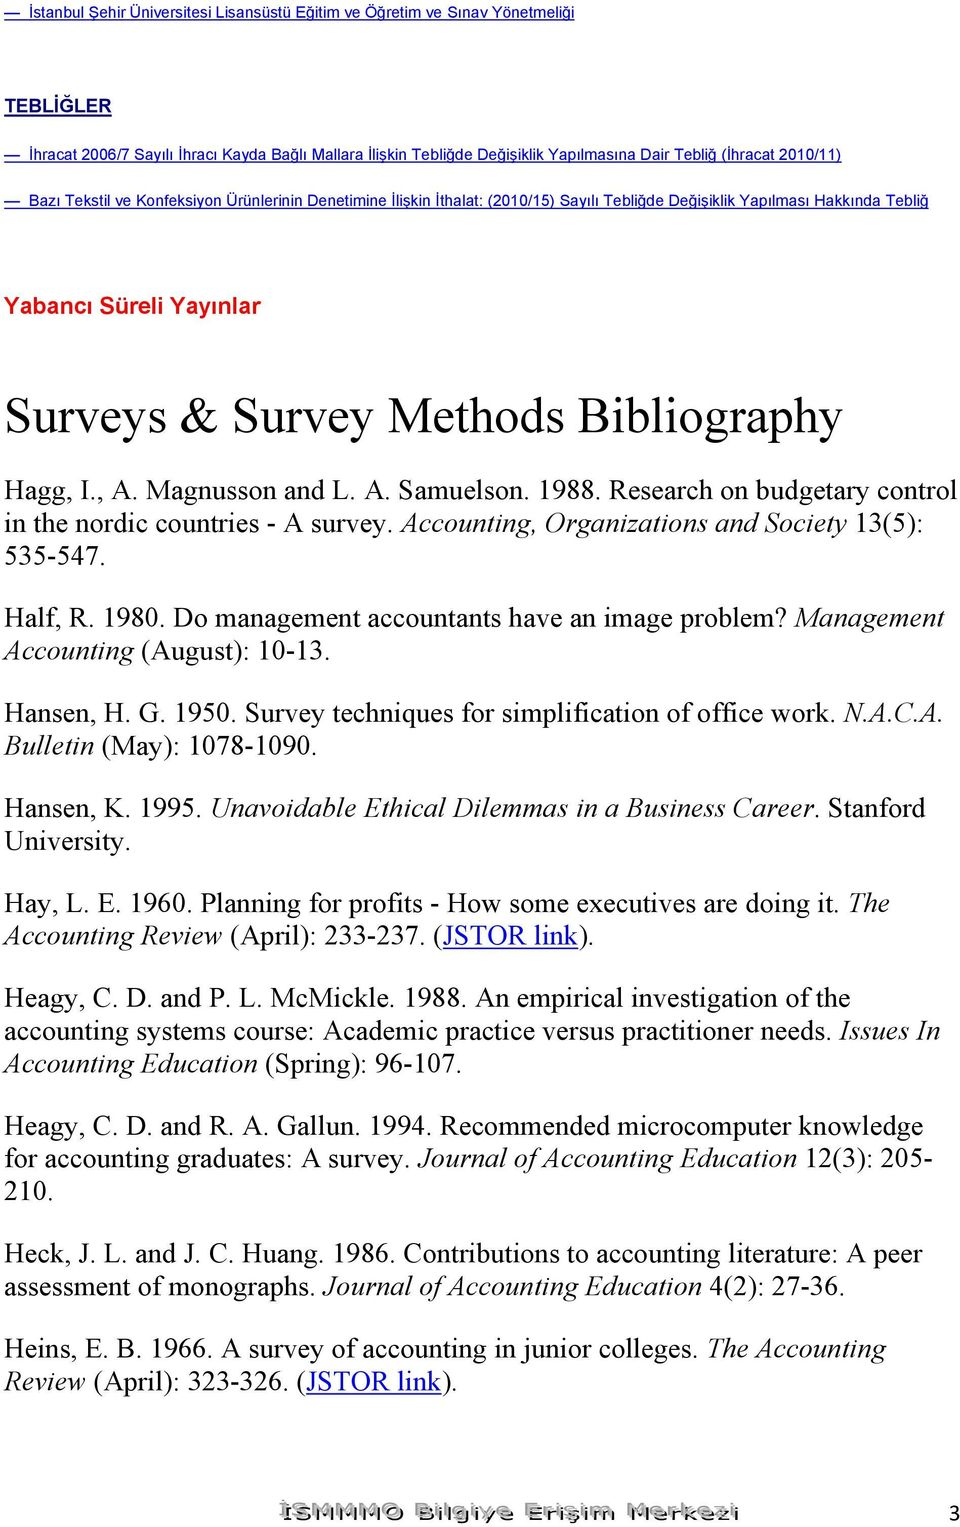 Bibliography Hagg, I., A. Magnusson and L. A. Samuelson. 1988. Research on budgetary control in the nordic countries - A survey. Accounting, Organizations and Society 13(5): 535-547. Half, R. 1980.